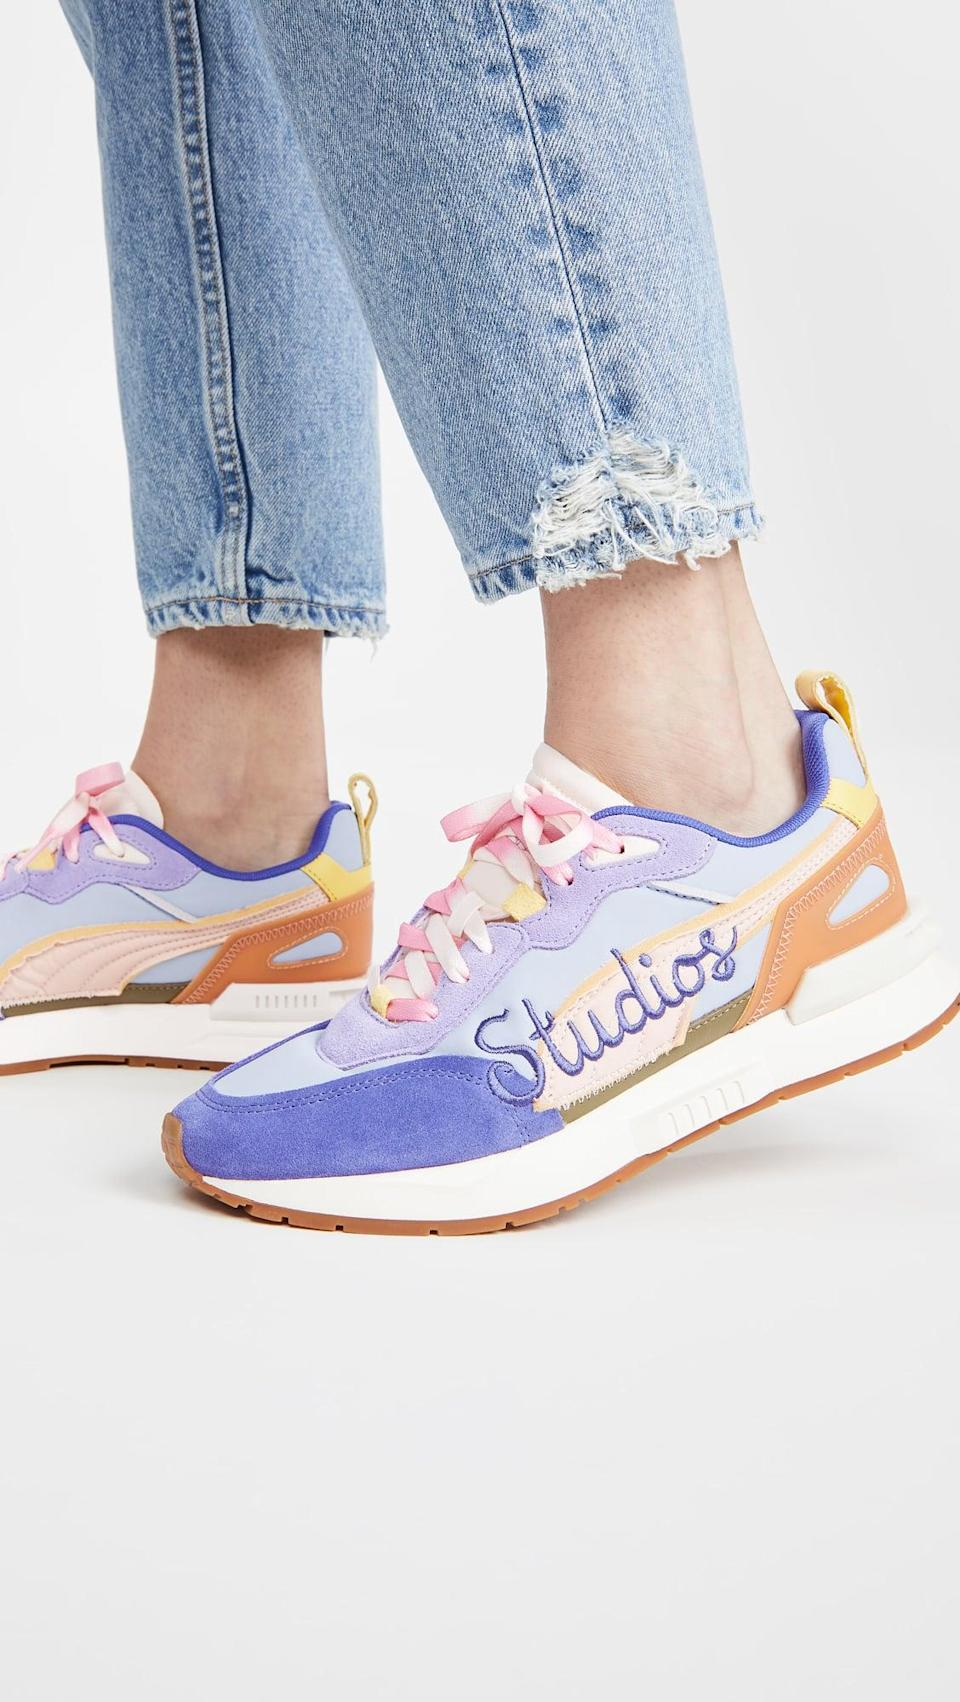 """<p><span>Puma x KidSuper Mirage Mox Sneakers</span> ($52, originally $130)</p> <p>""""The pastel colorway of these Puma sneakers is so dreamy. I'll wear them with a simple tee and jeans so they can get all the attention."""" - Macy Cate Williams, senior editor, Shop</p>"""